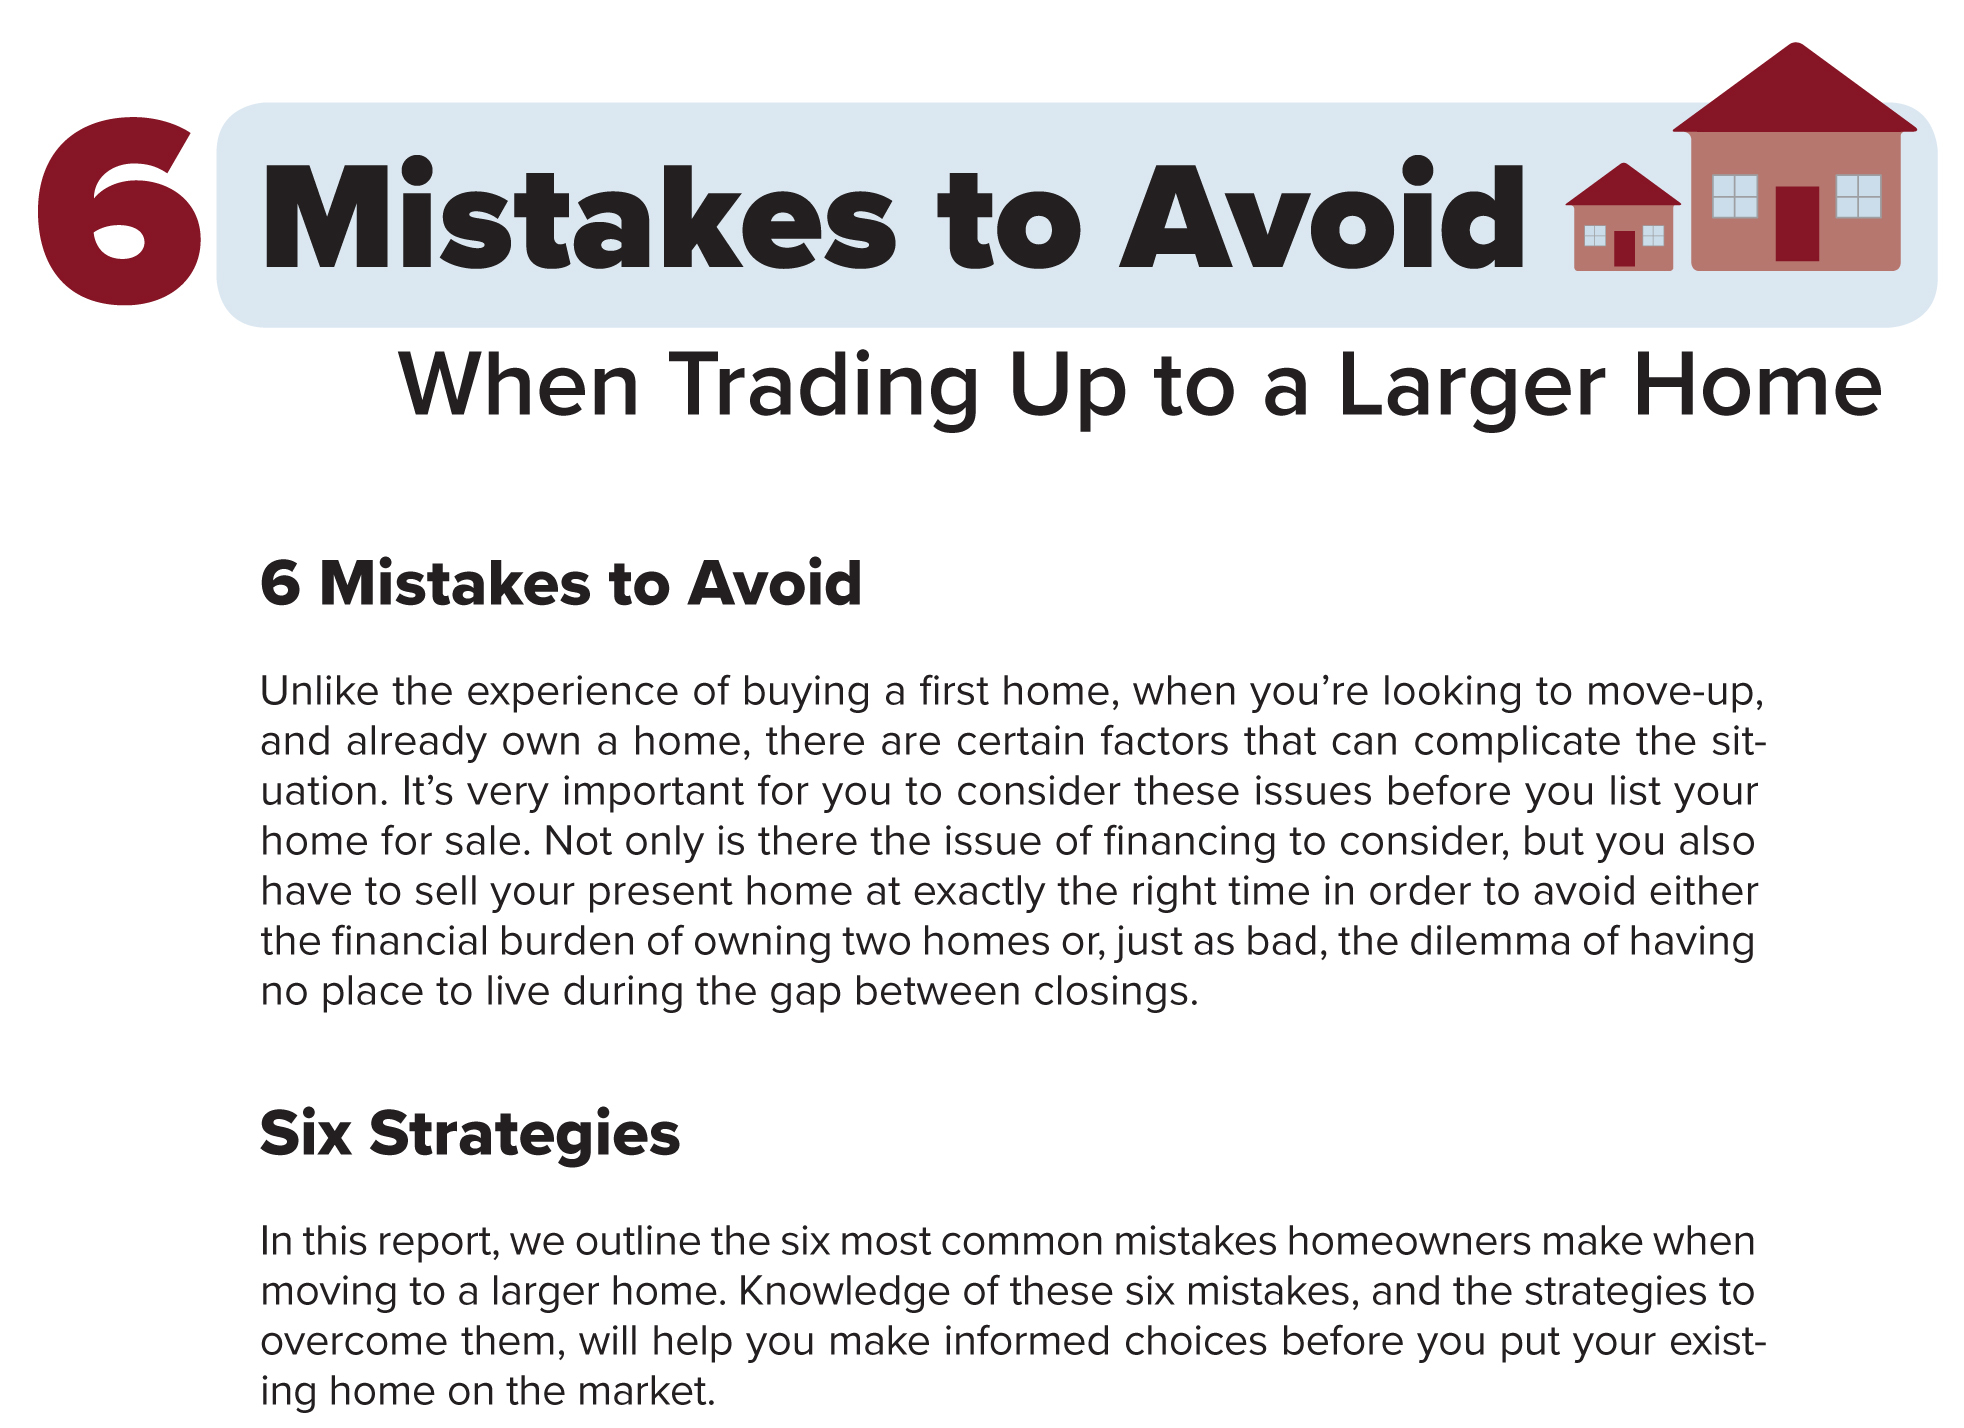 trade up mistakes-1.jpg